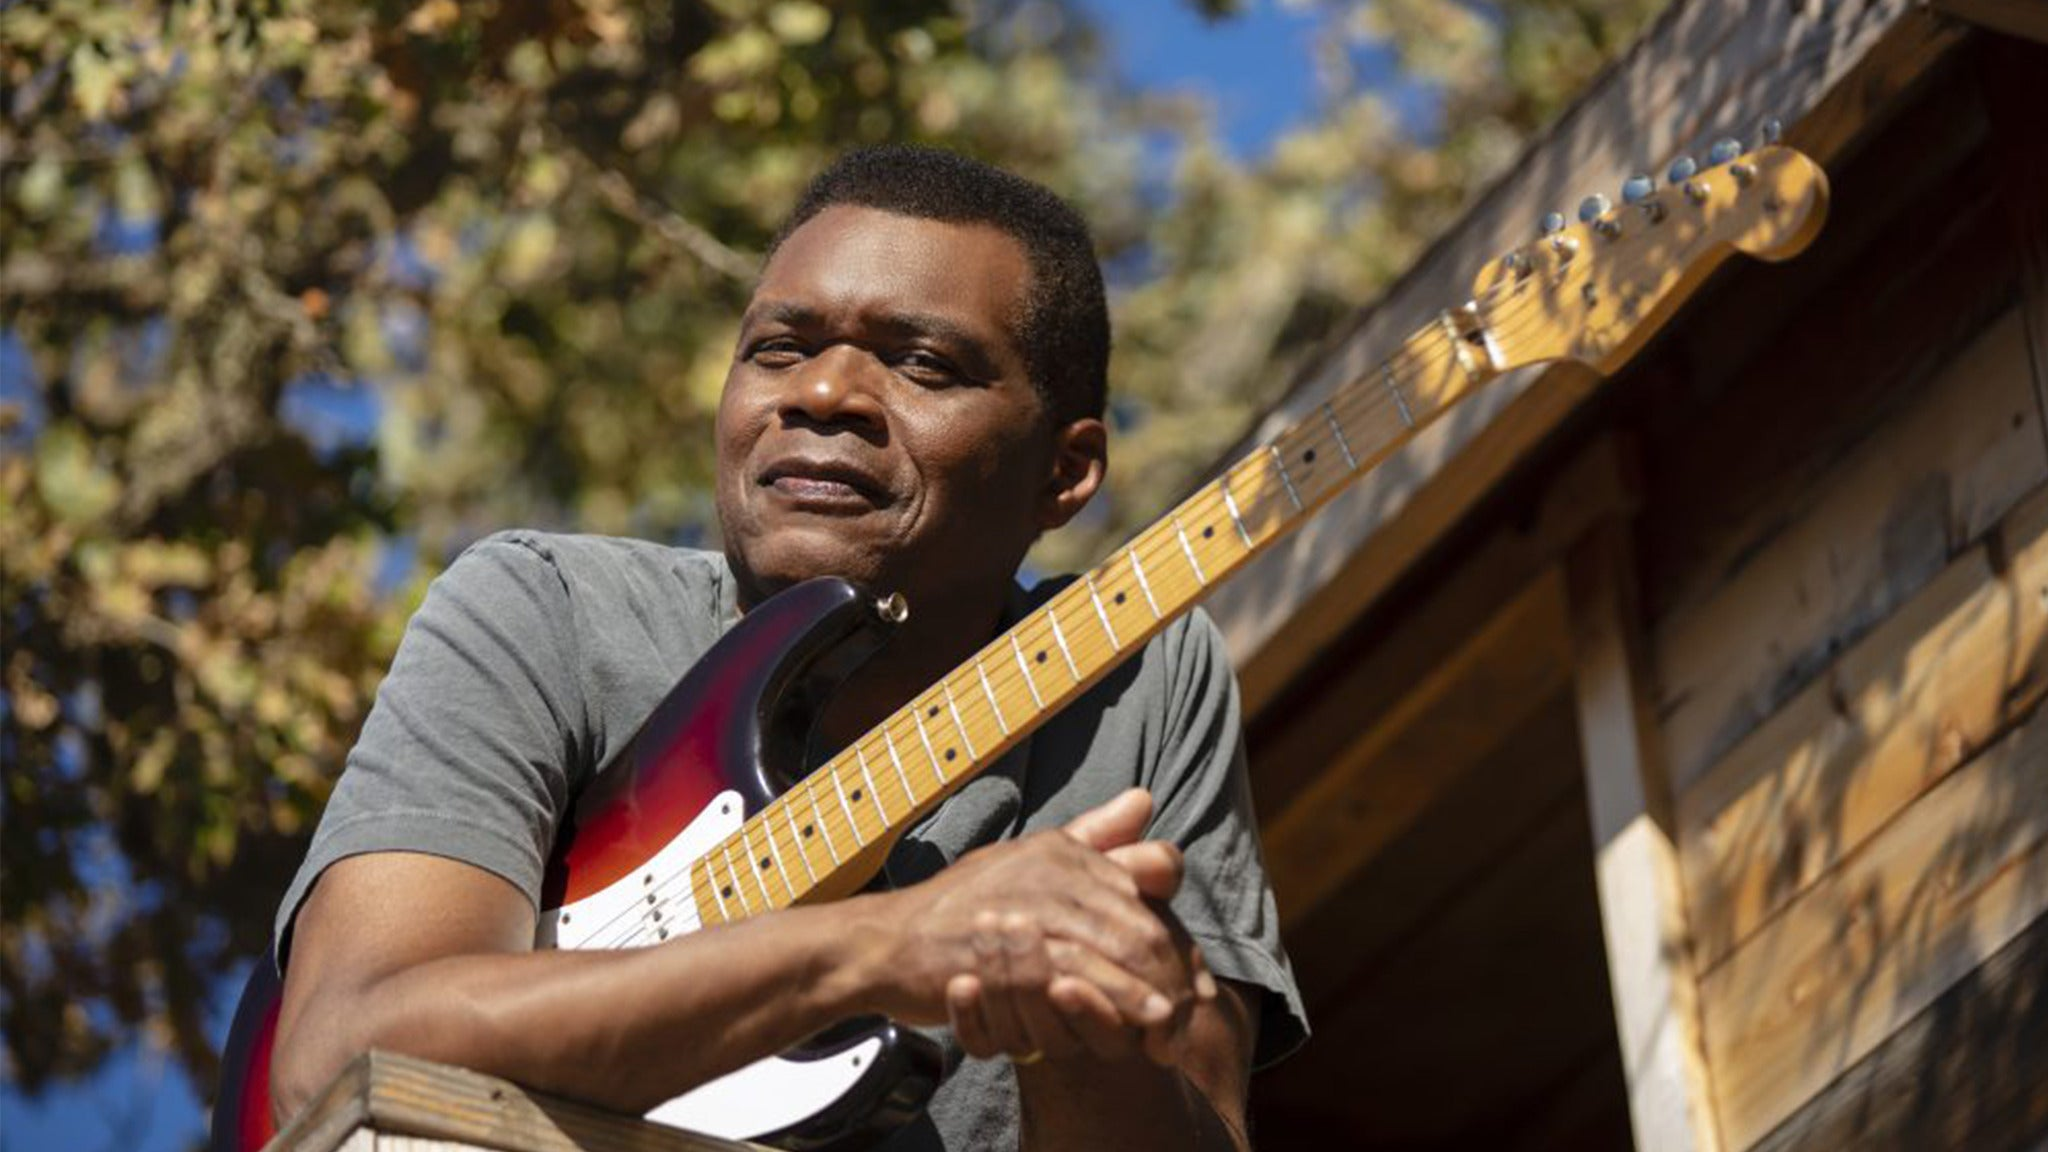 Robert Cray Band at Mystic Theatre